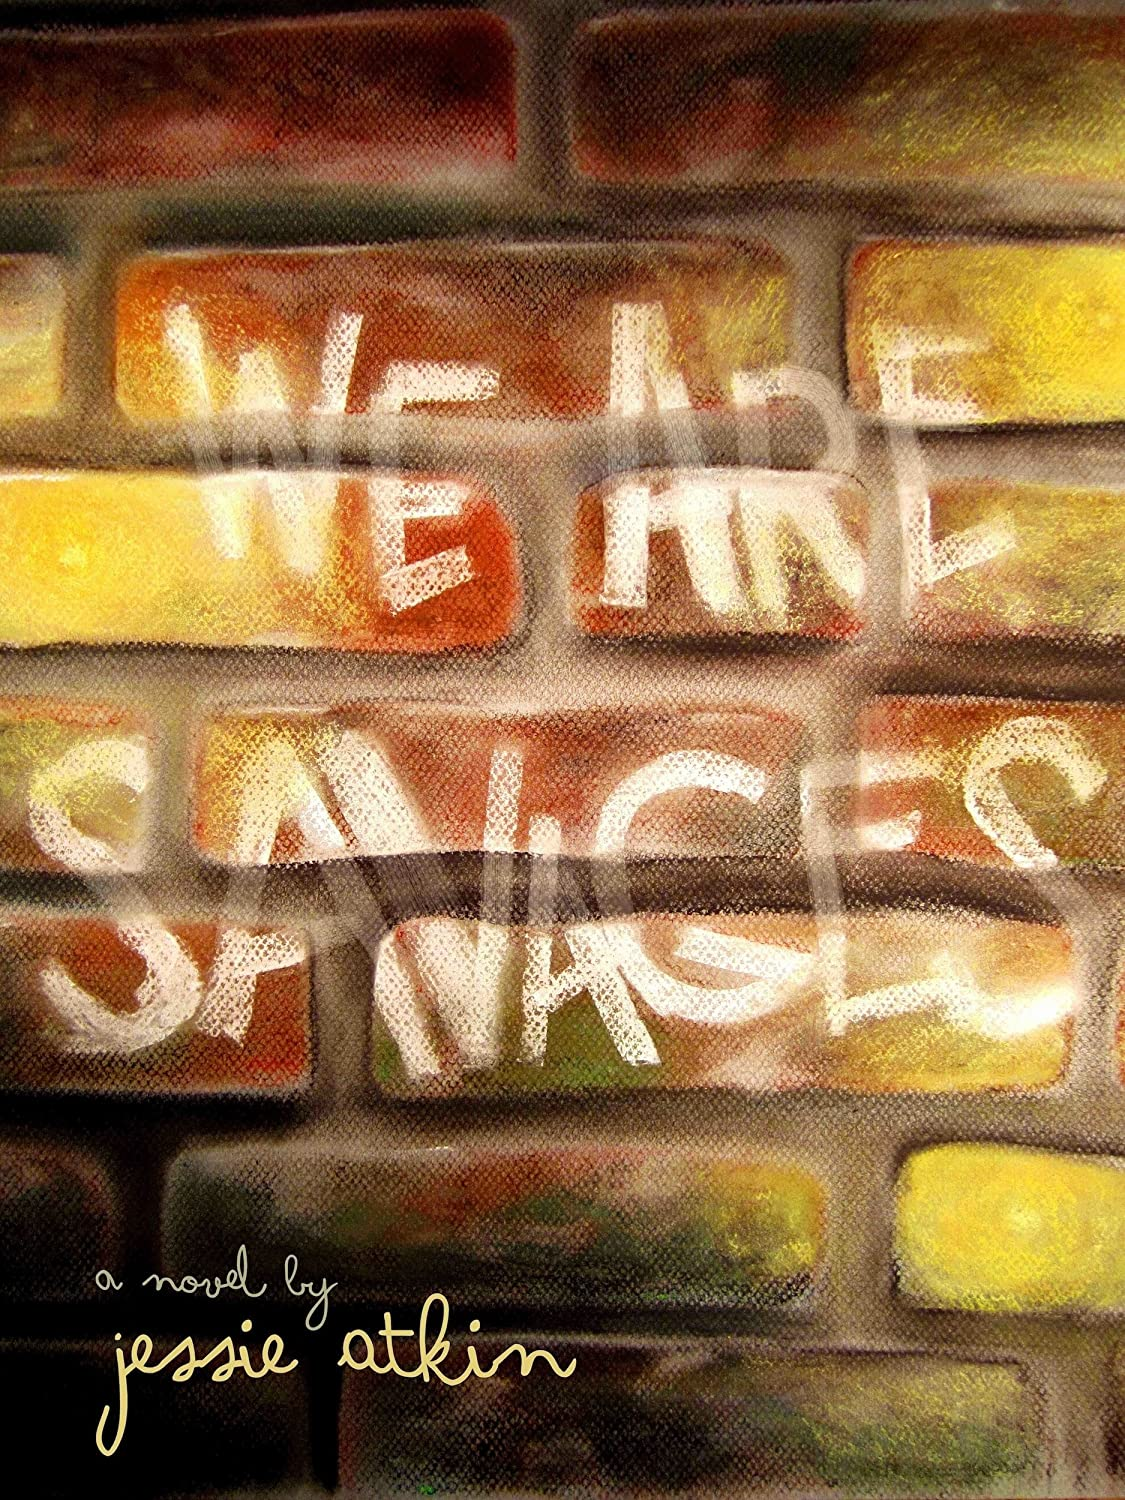 We Are Savages by Jessie Atkin